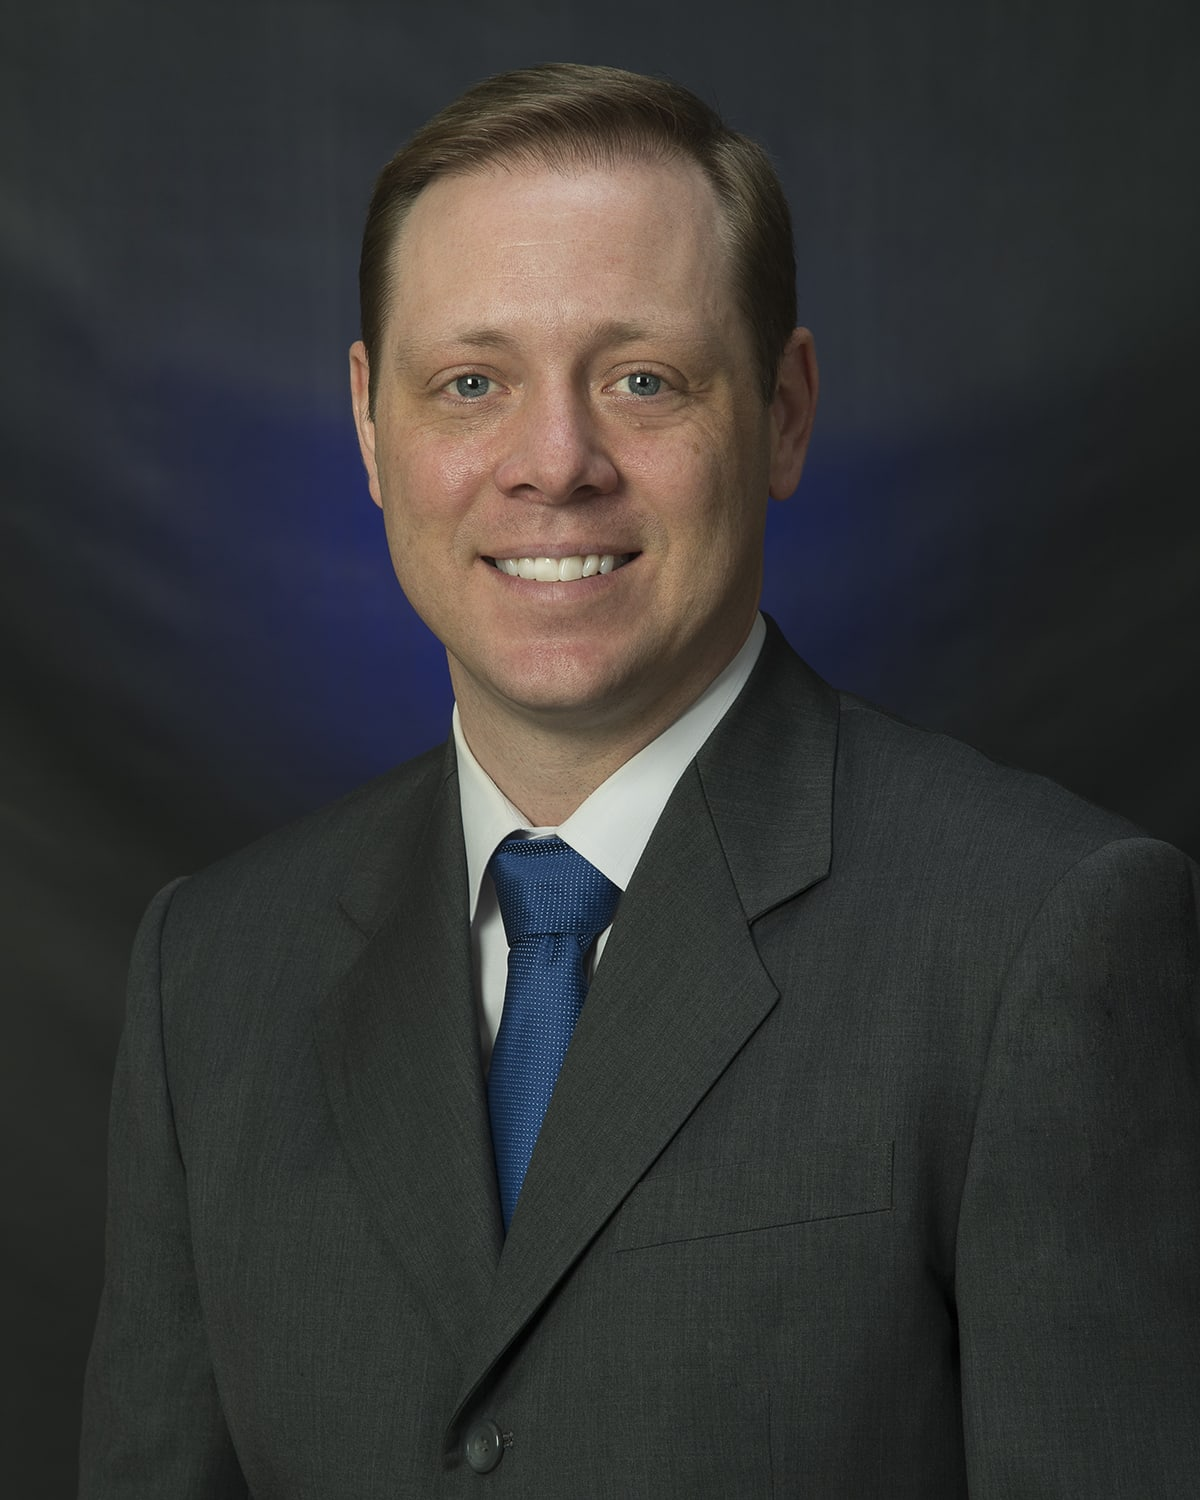 Dr. Aaron E Quitmeyer DDS